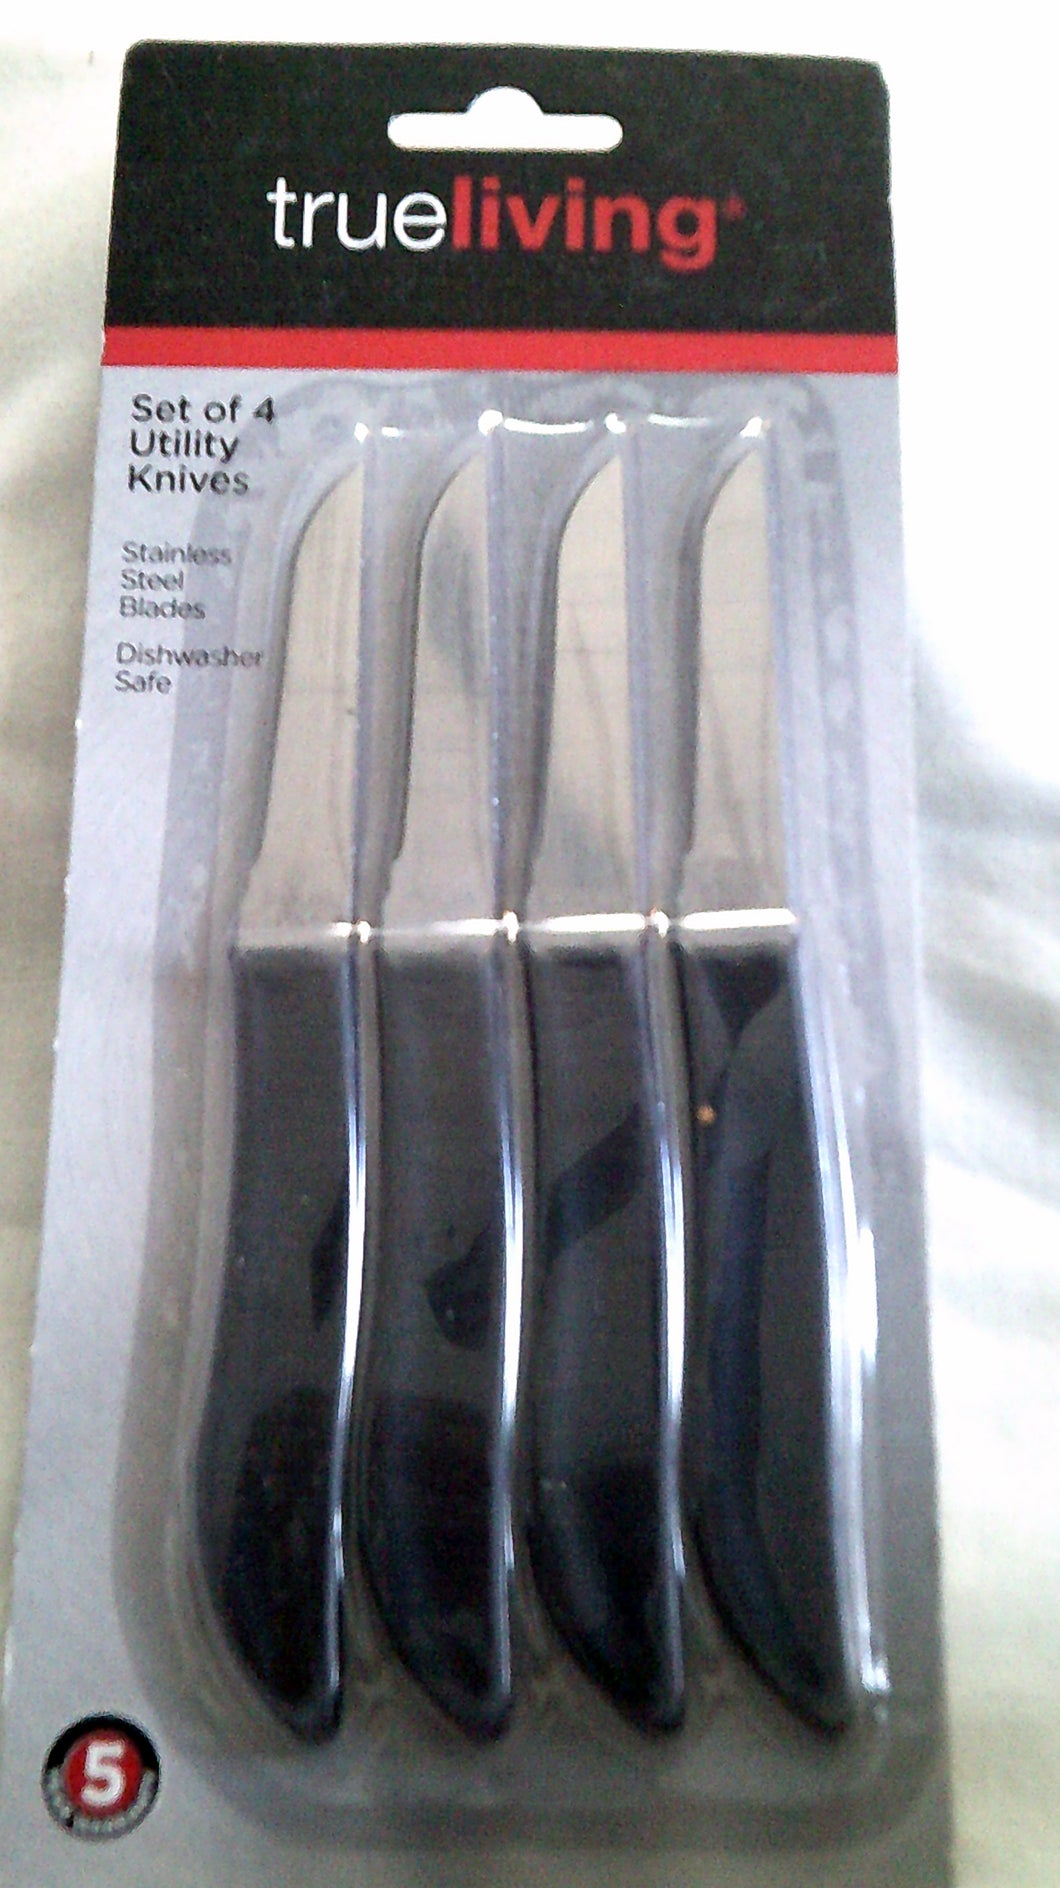 Set of 4 Trueliving Utility Knives or 4 Steak Knives  - New